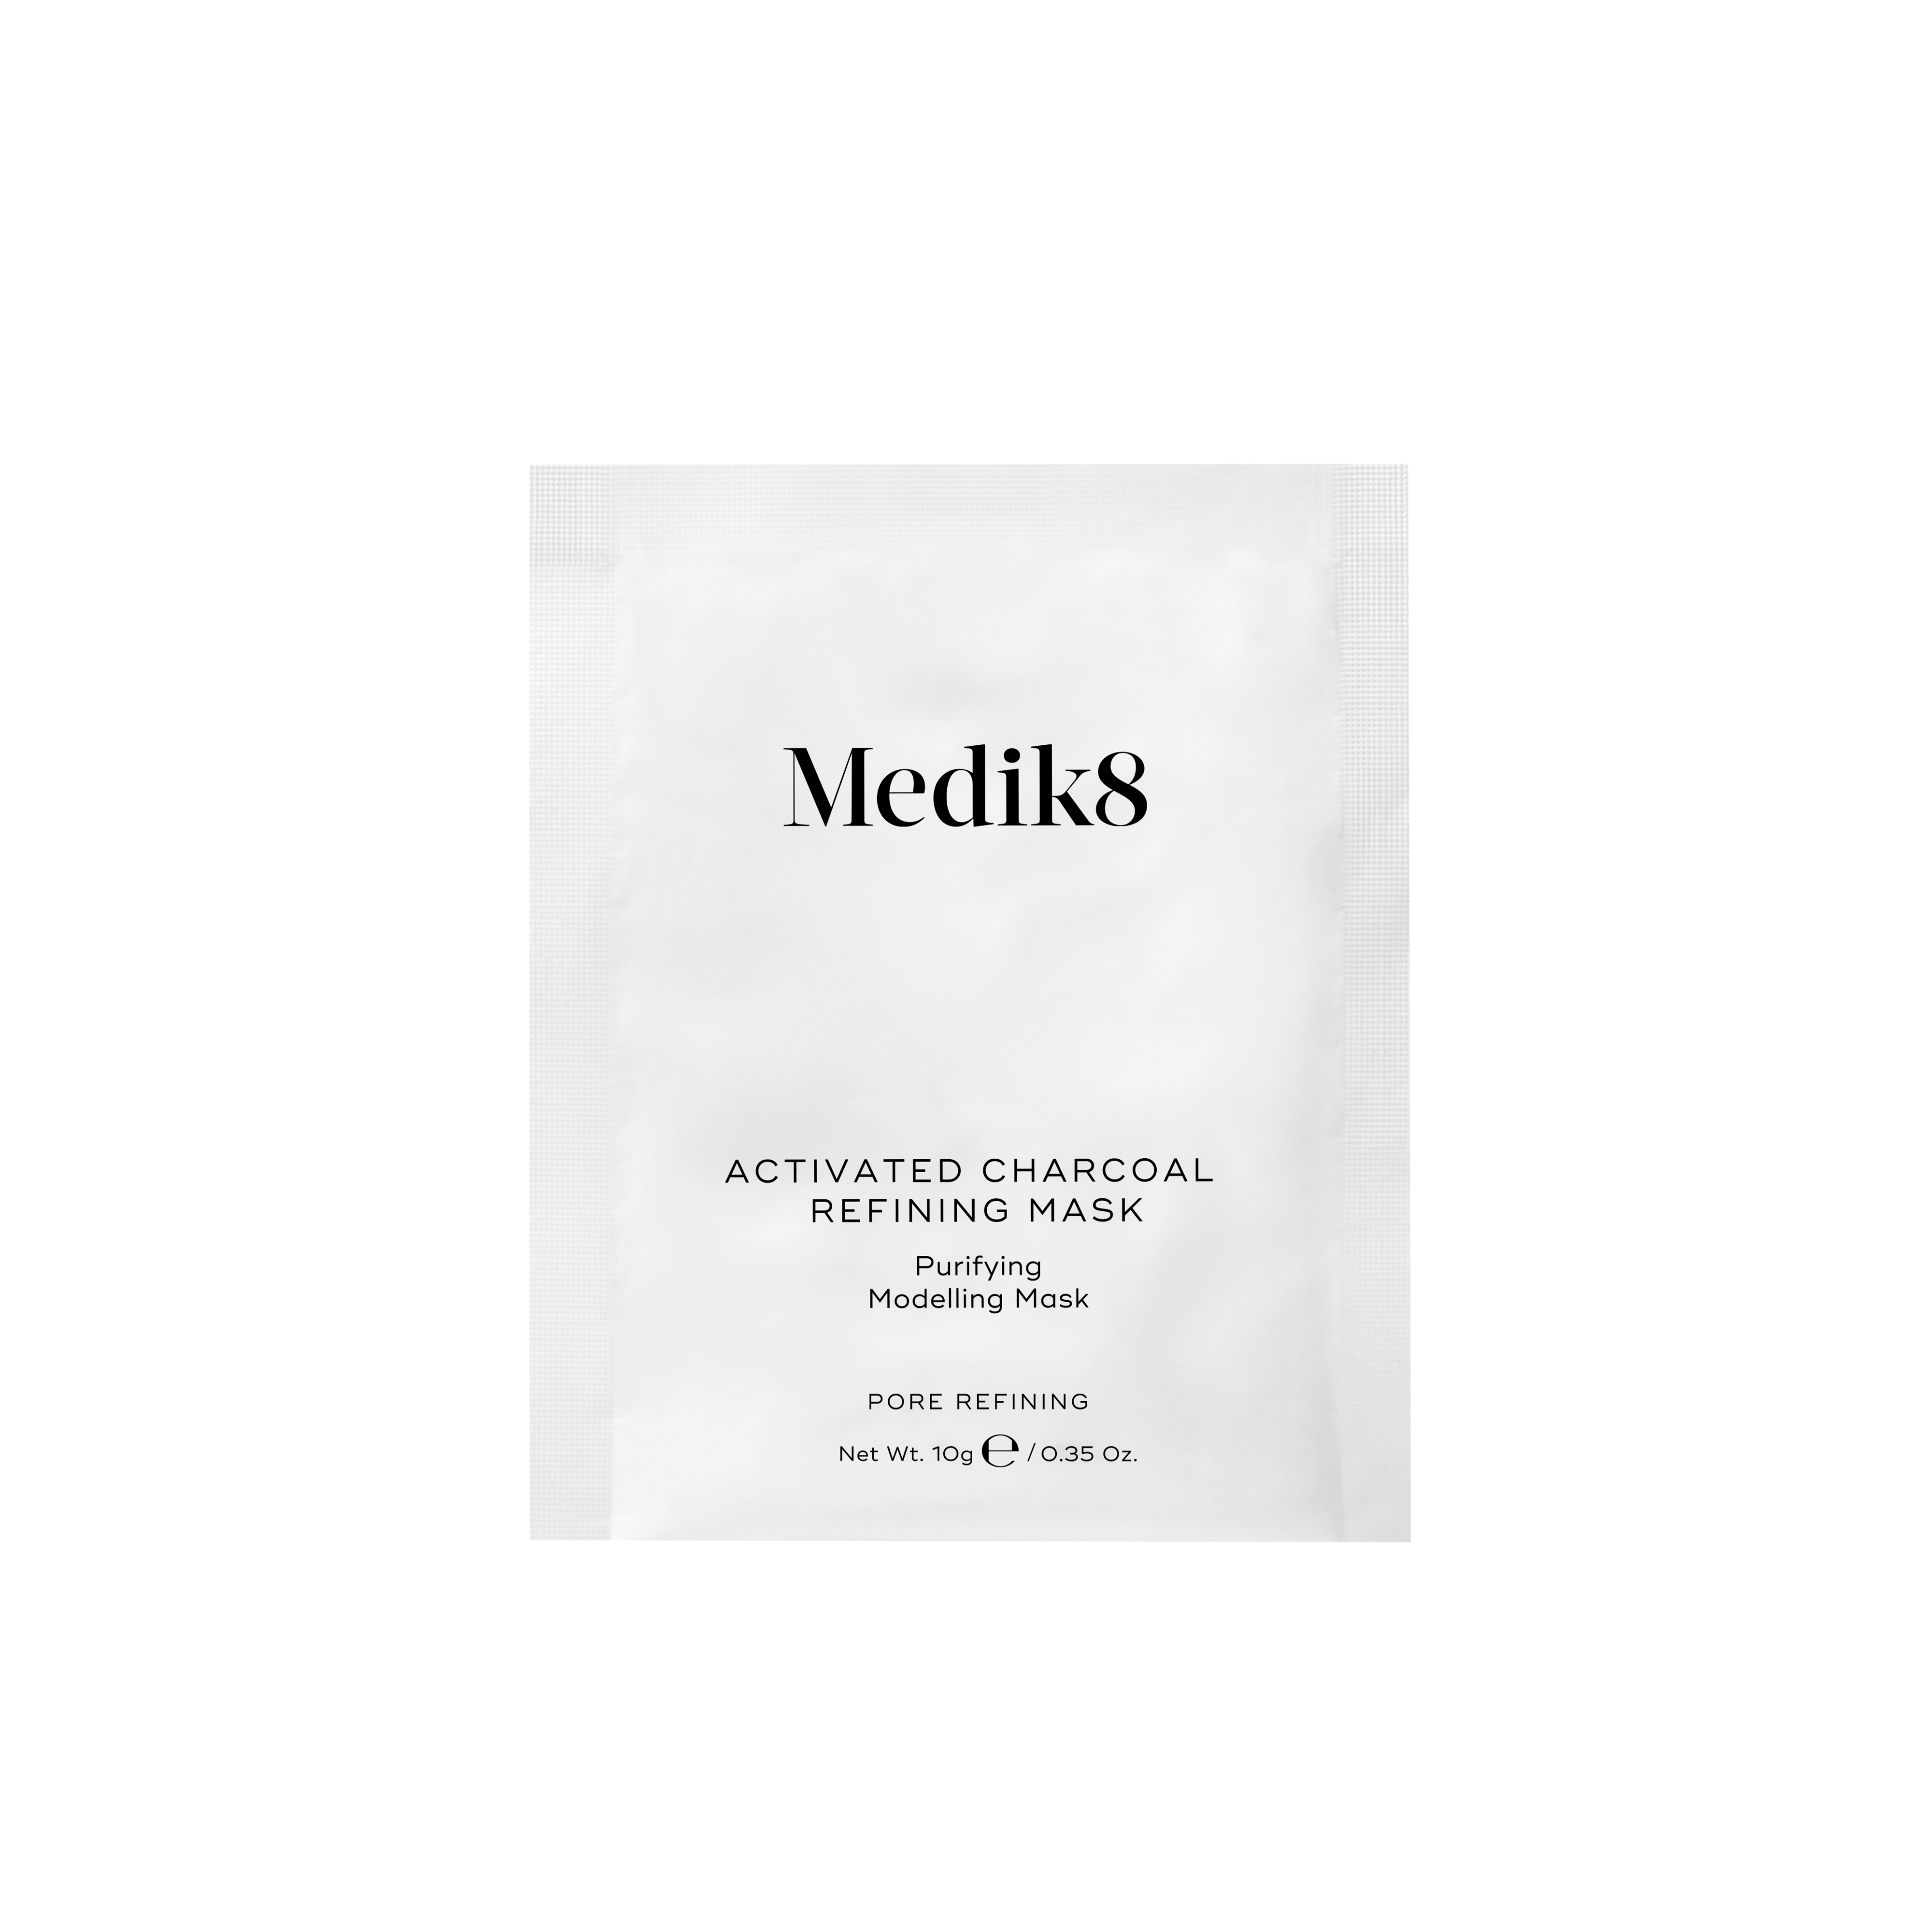 Activated Charcoal Refining Mask 10 g x 5